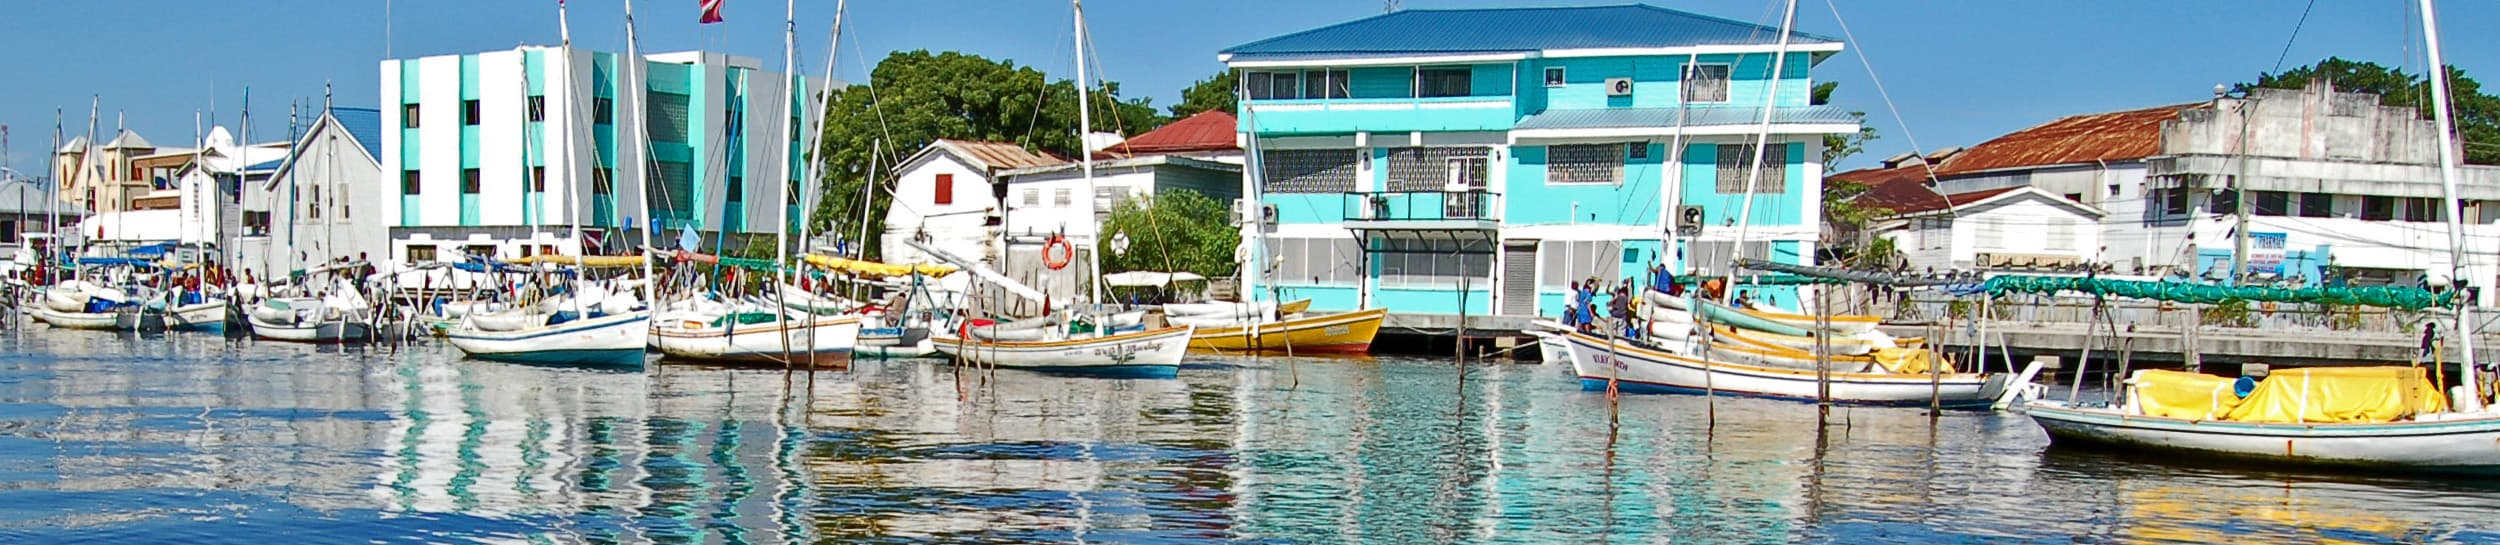 Jobs And Salaries In Belize City